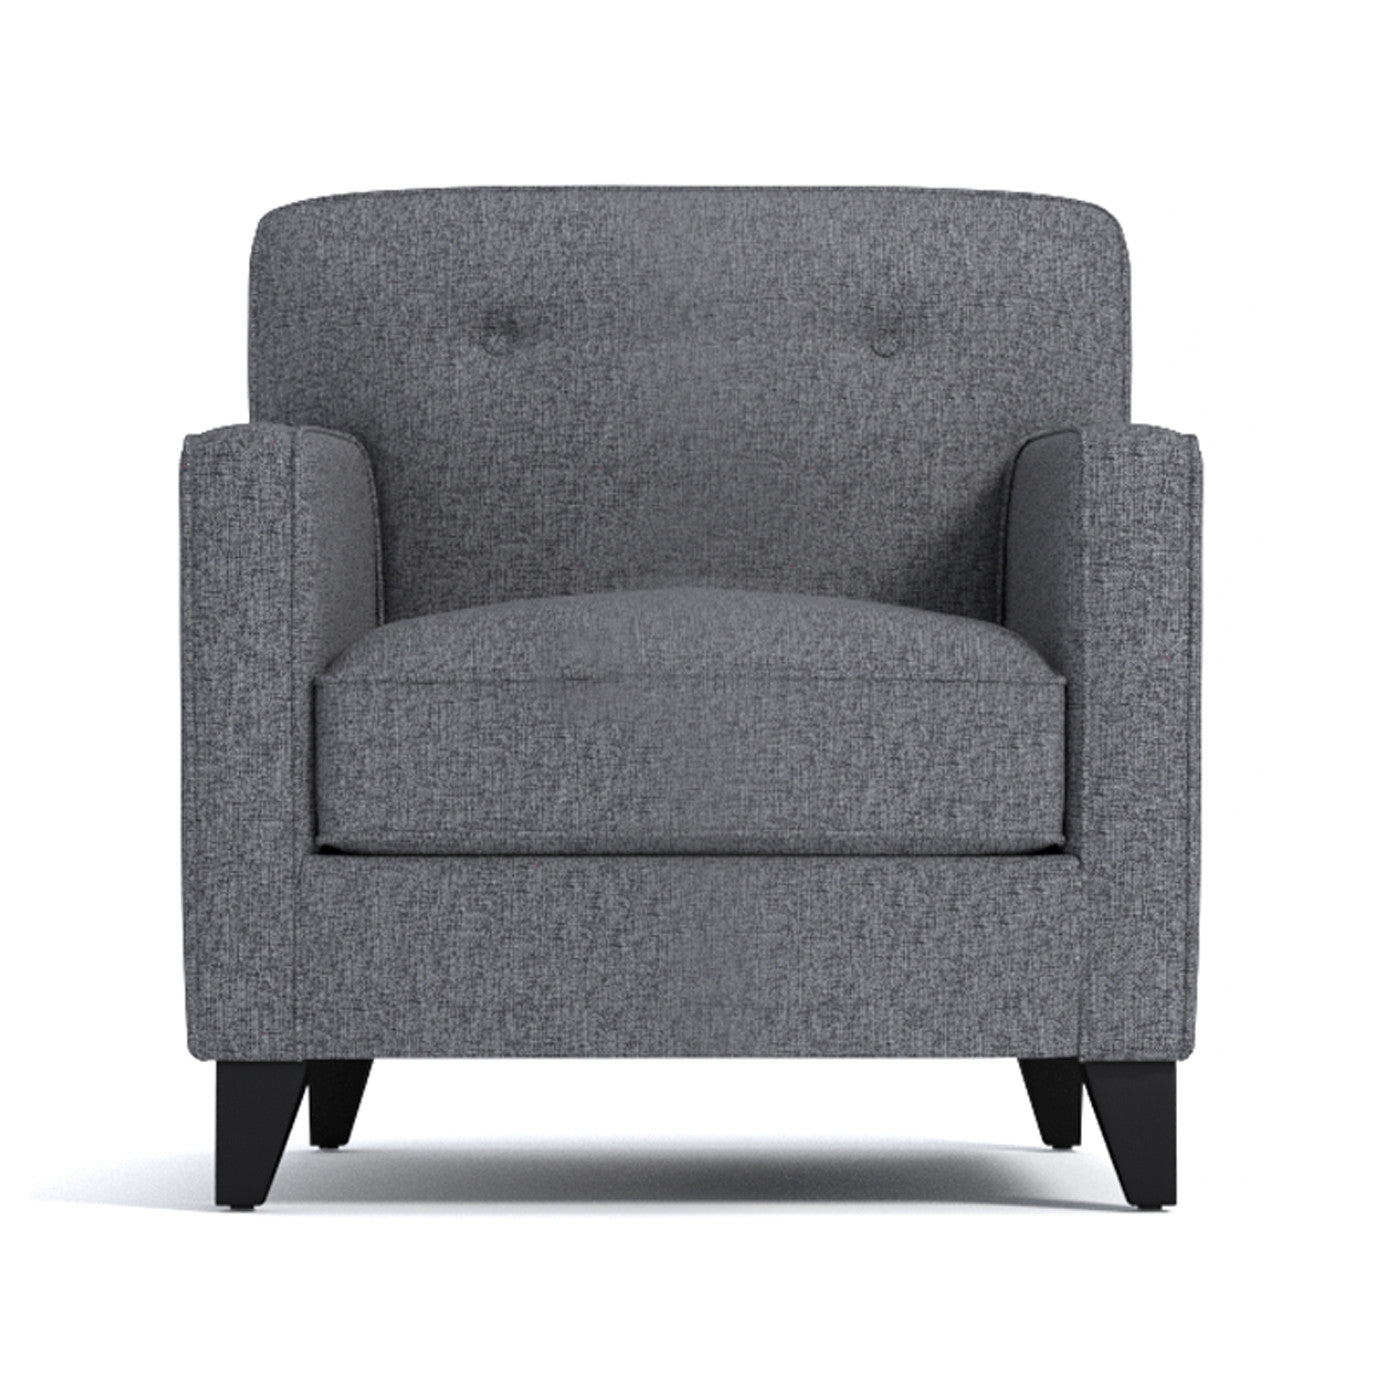 Harrison Chair From Kyle Schuneman CHOICE OF FABRICS